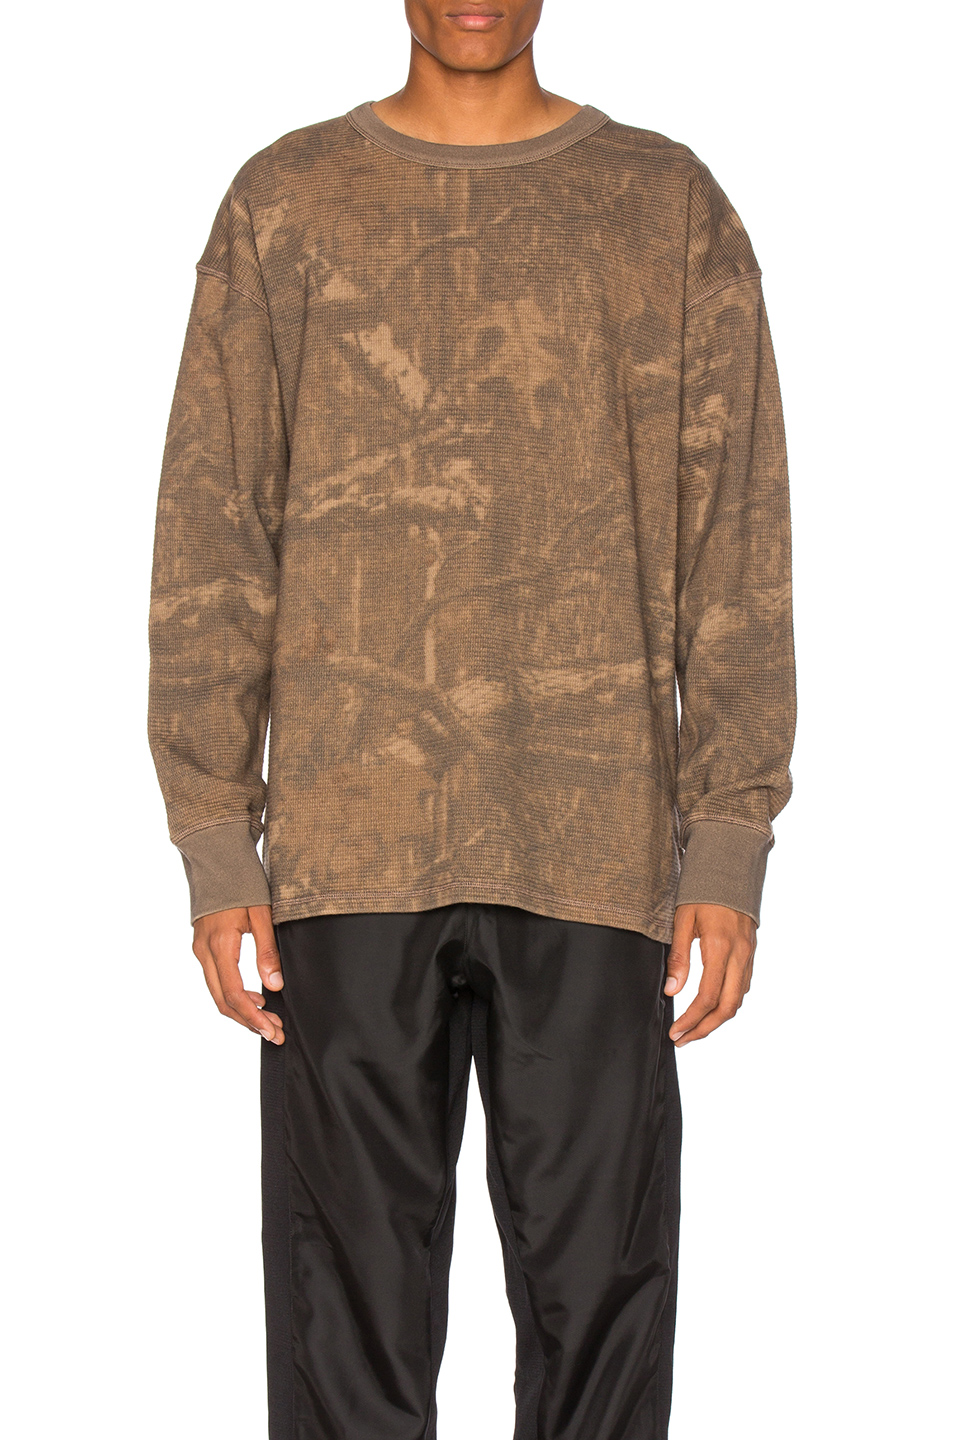 YEEZY Season 3 Thermal Long Sleeve Tee in Abstract,Brown